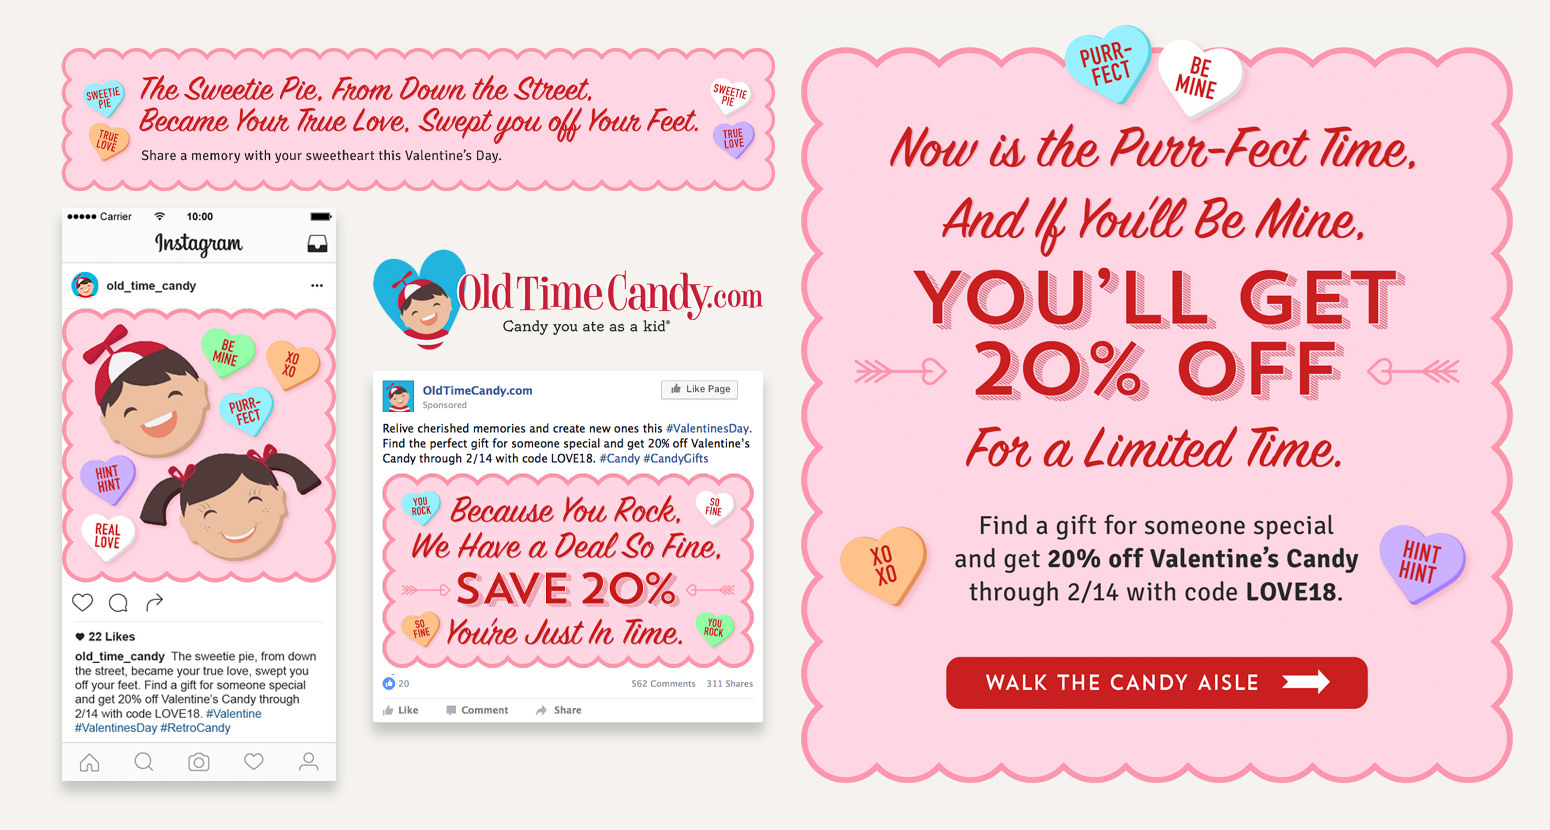 A Valentine's Day promotional campaign for OldTimeCandy.com.